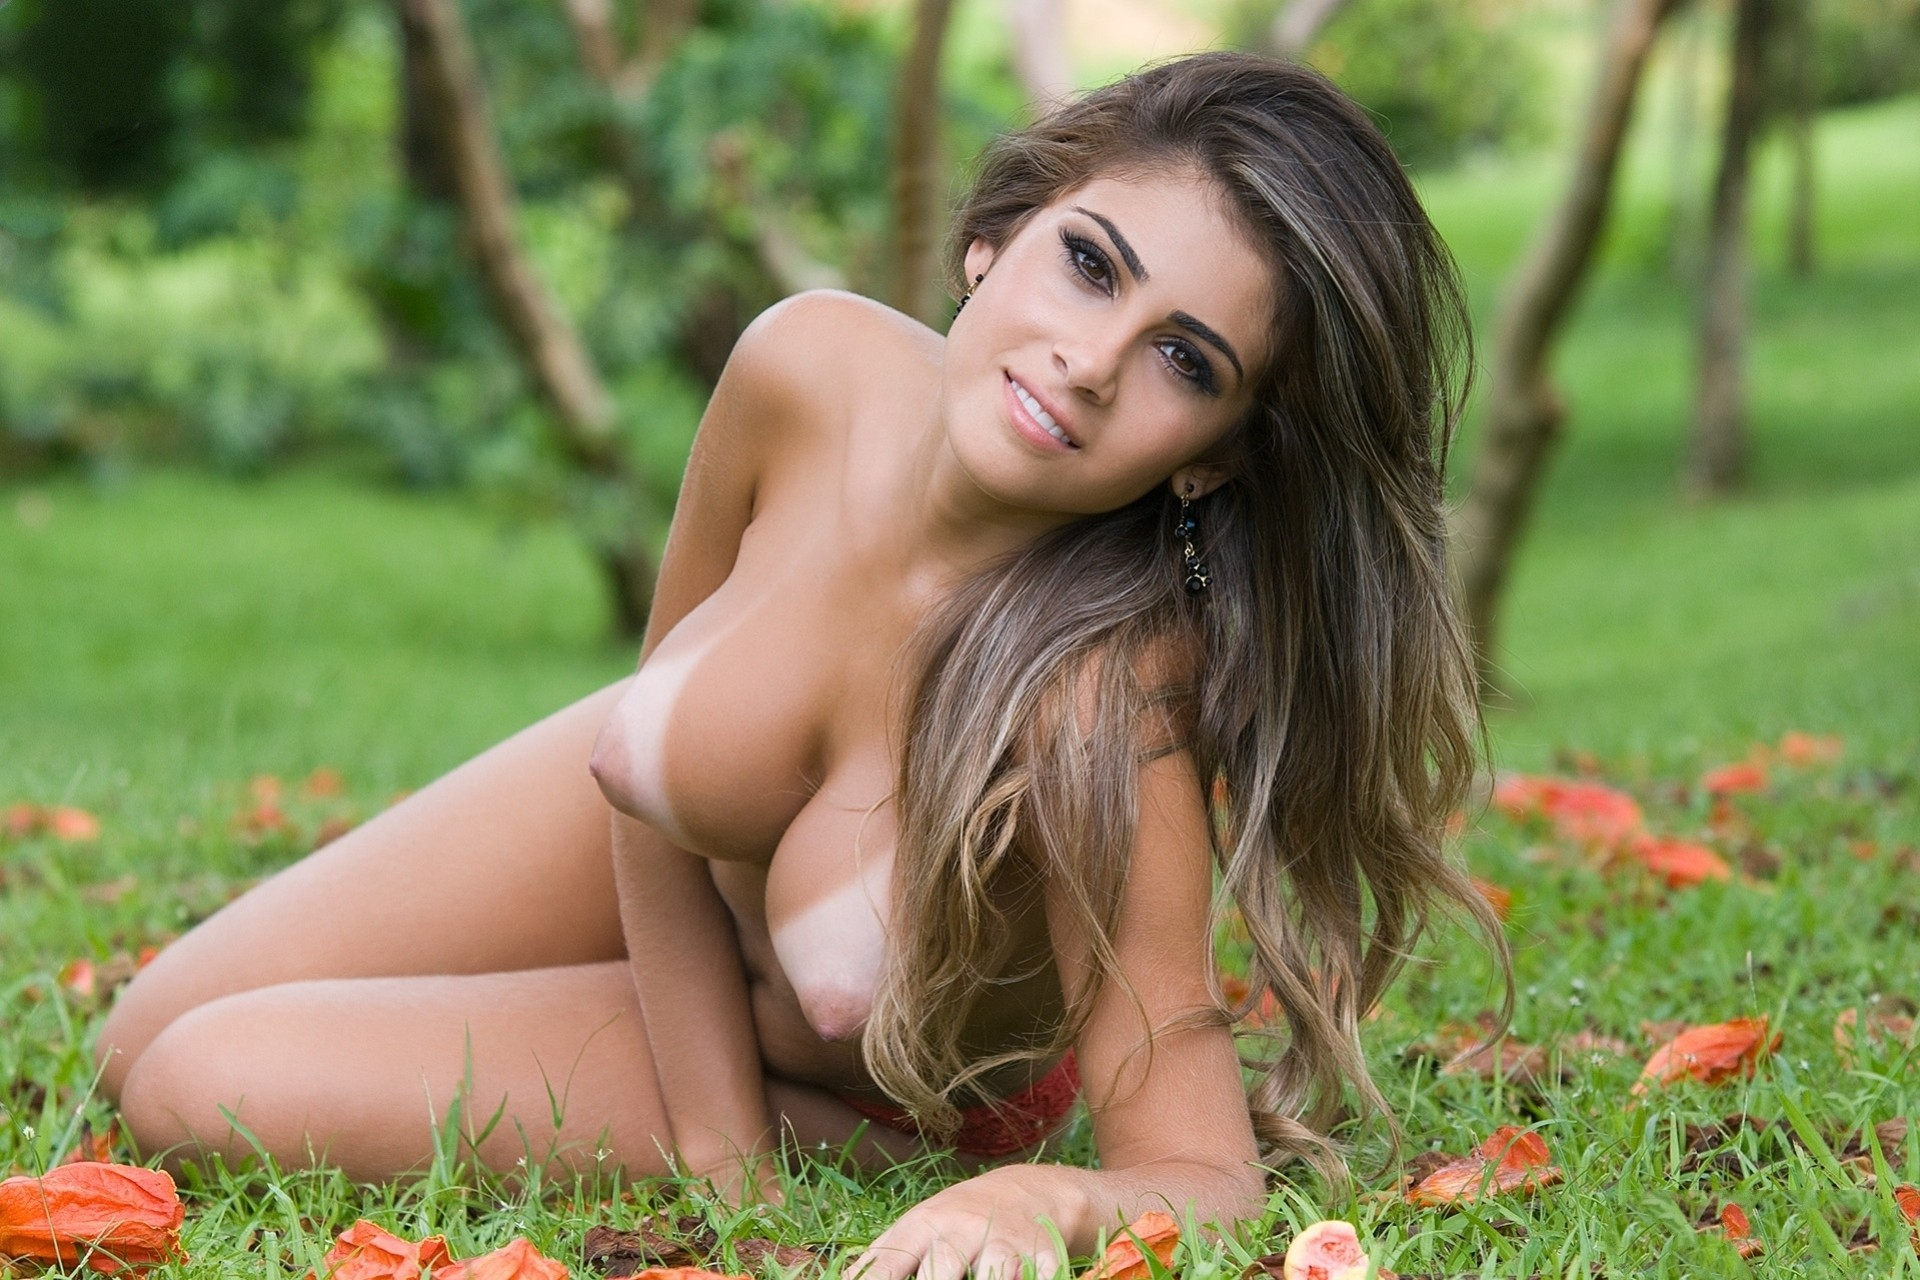 Most beautifulest women naked #13